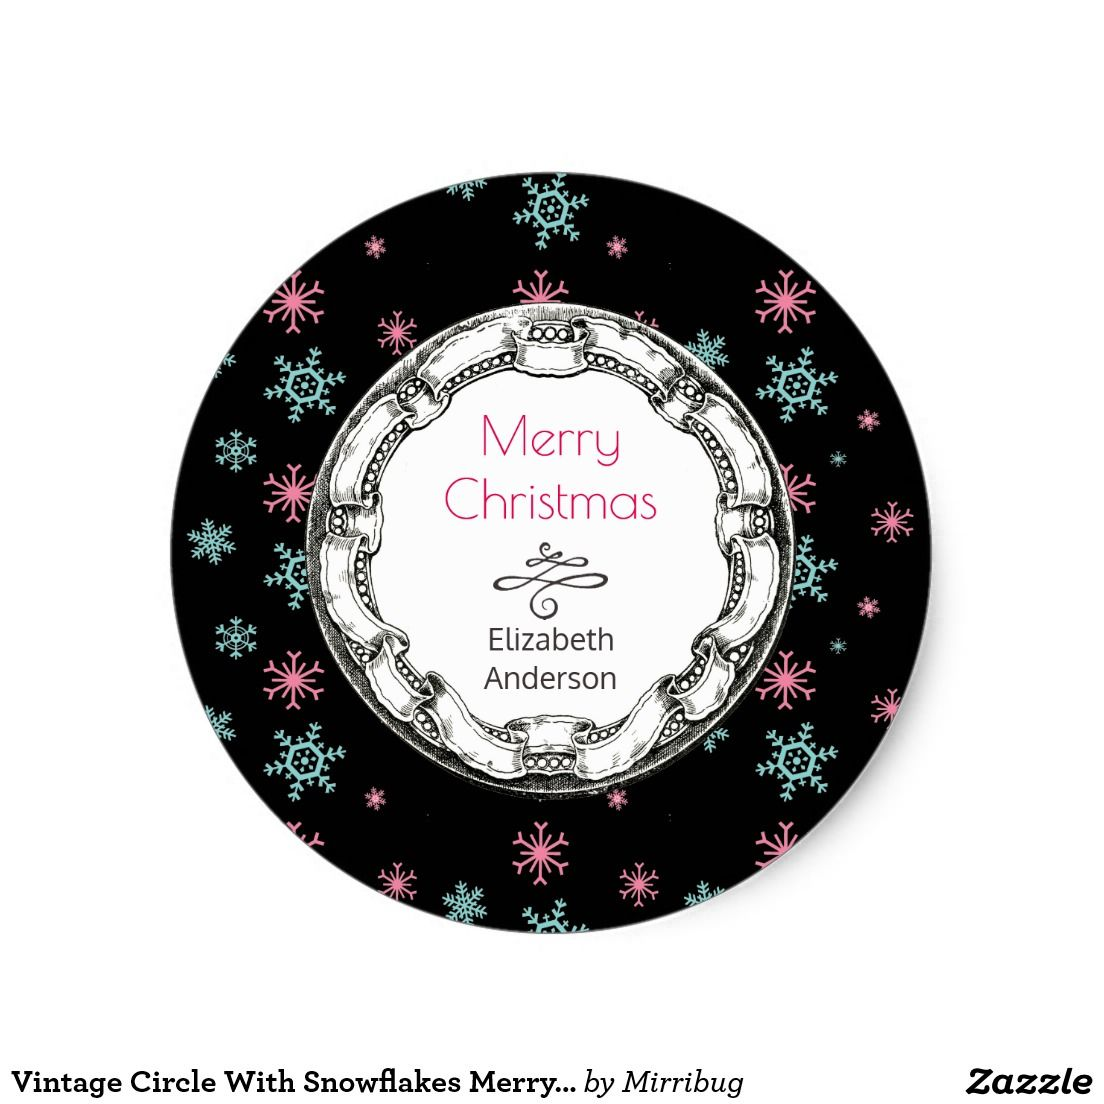 Vintage Circle With Snowflakes Merry Christmas Sticker Christmas Stickers Stickers Classic Christmas